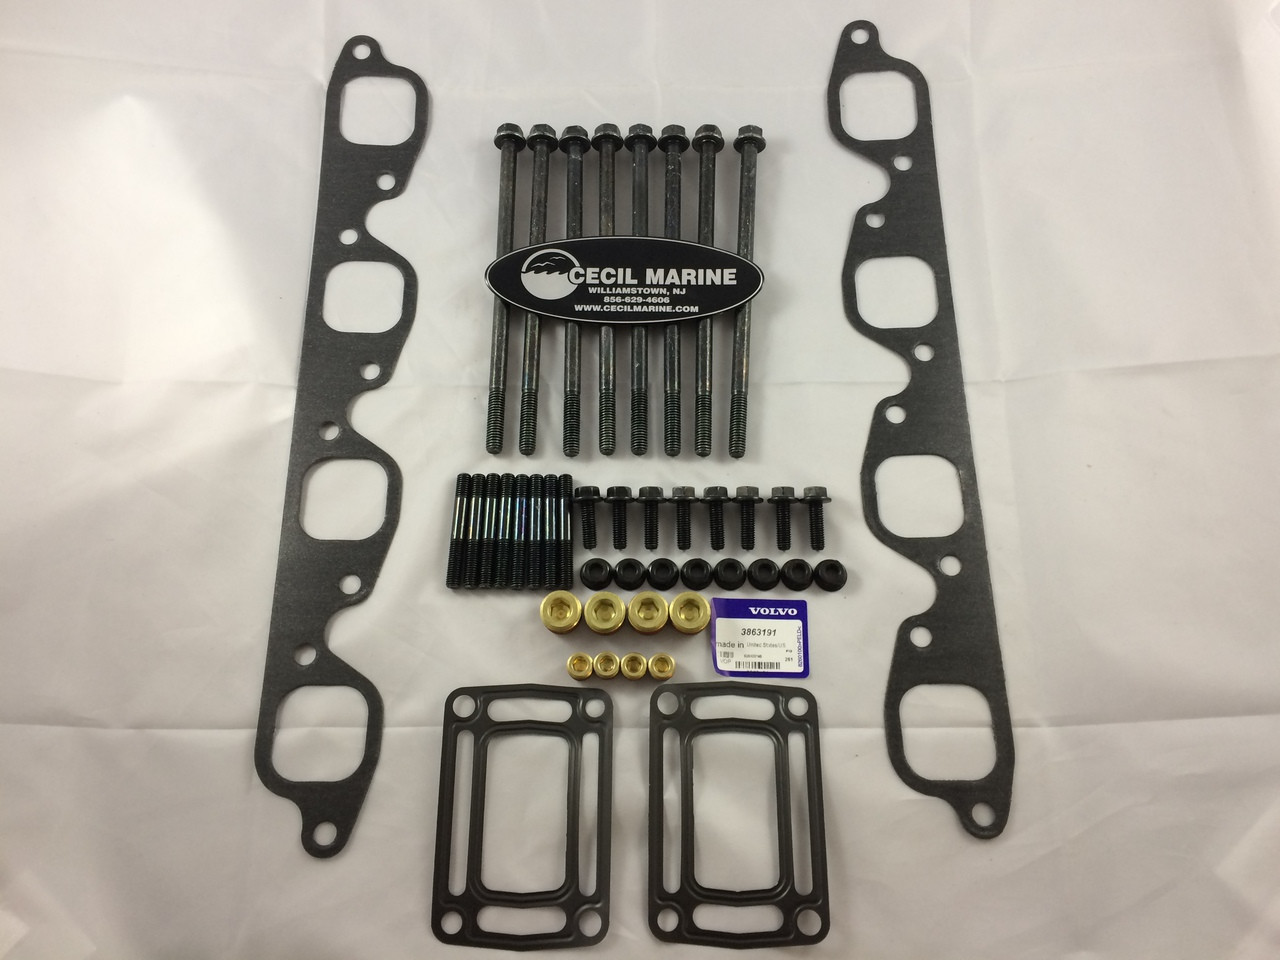 $1995.00* FREE SHIPPING GENUINE VOLVO PENTA 8.1 MANIFOLD REPLACEMENT KIT - 3847640  * In Stock & Ready To Ship!